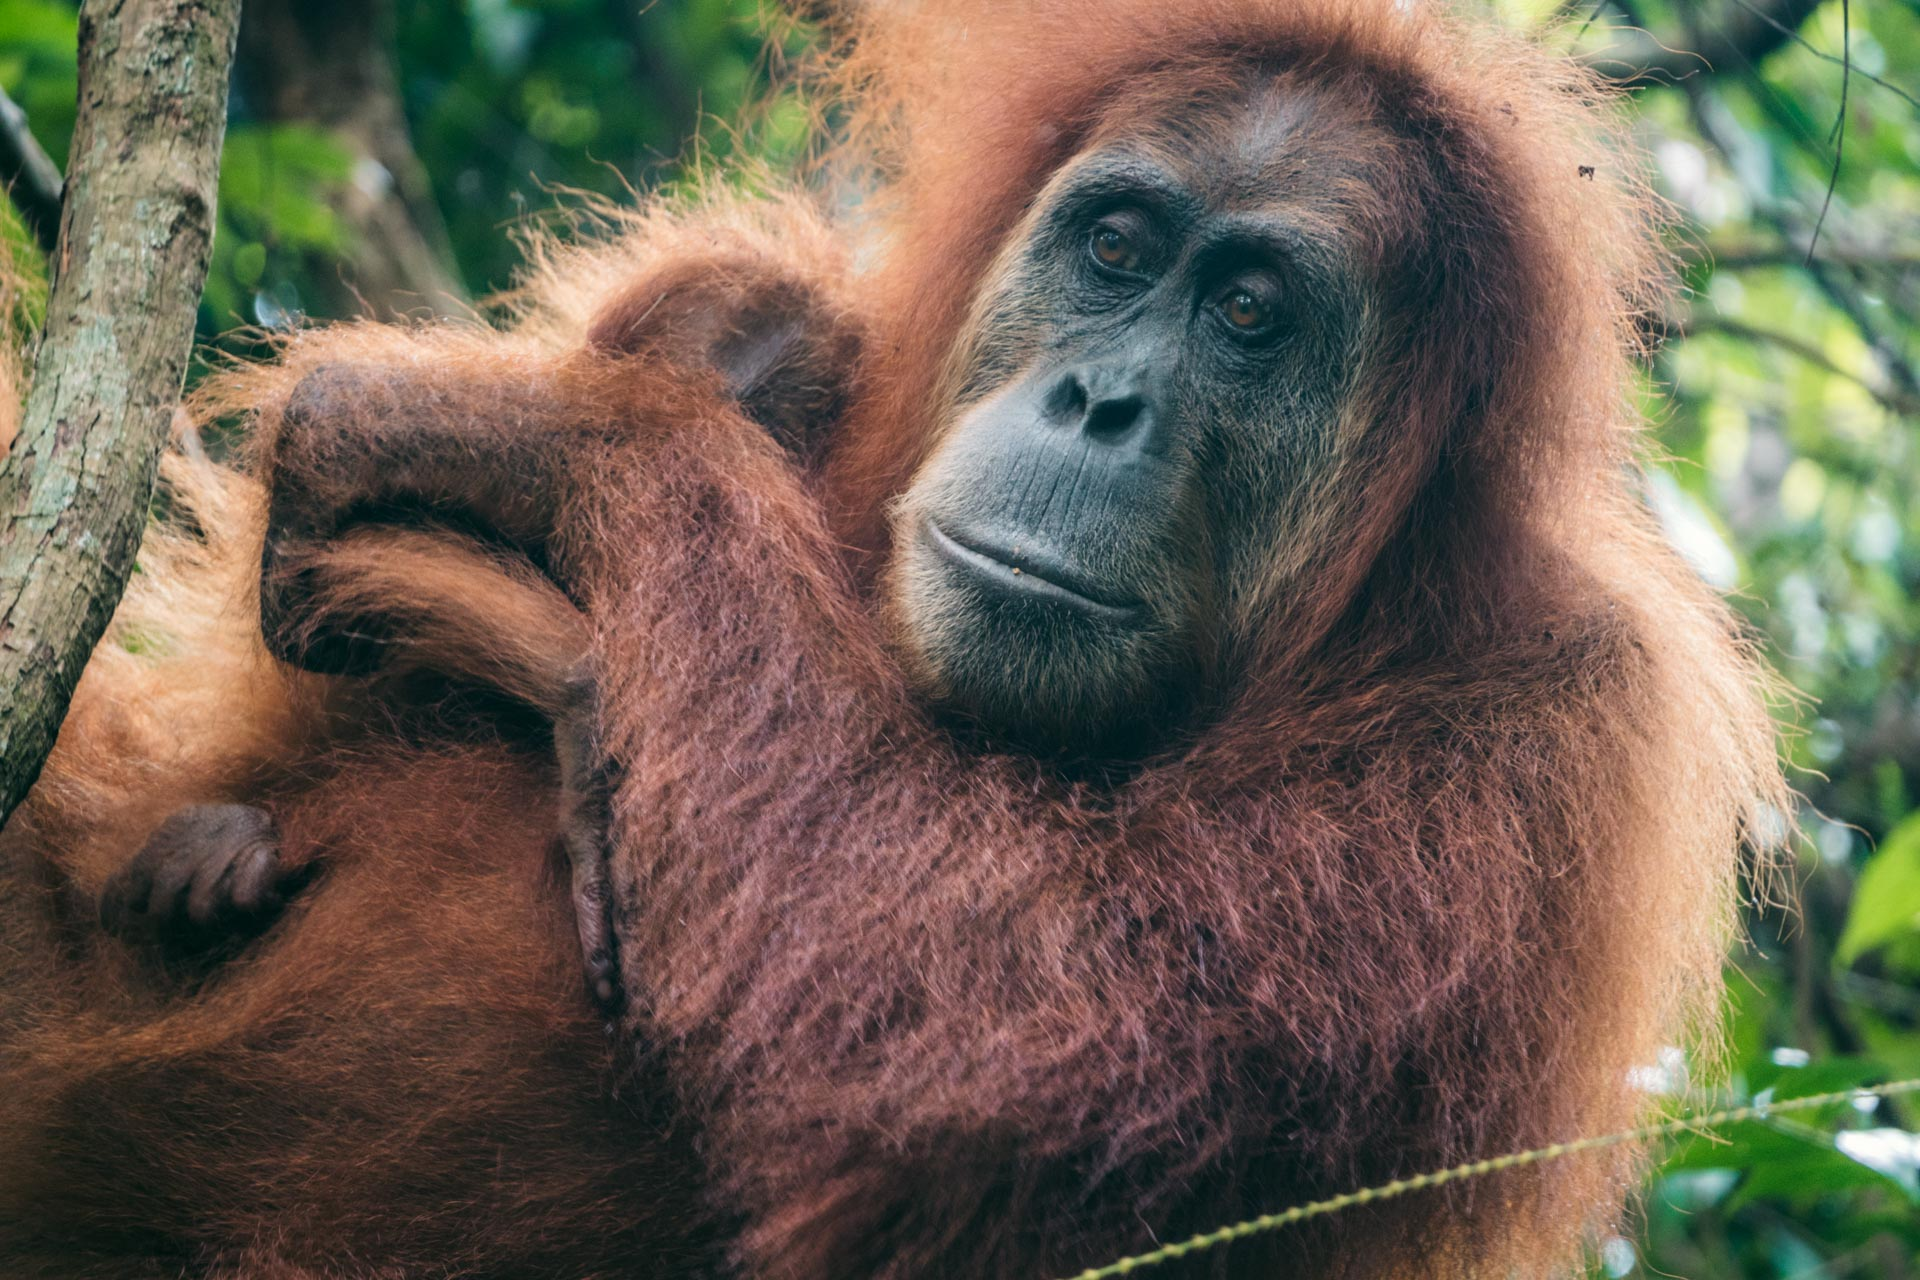 Orangutan Jungle Trekking in Bukit Lawang: Complete Travel Guide